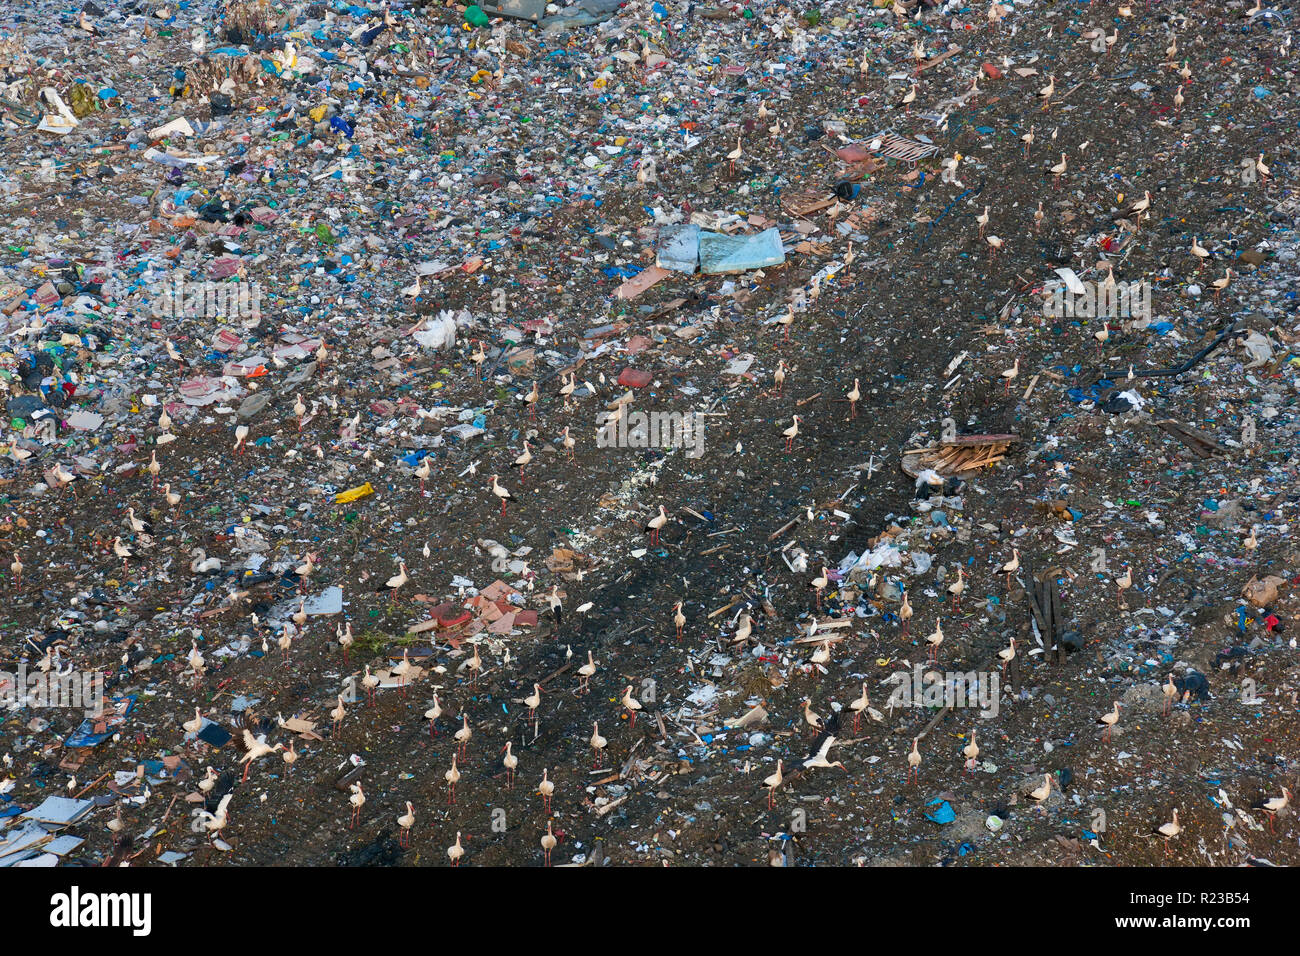 Aerial view of rubbish in land fill site, Andalucia, Spain Stock Photo